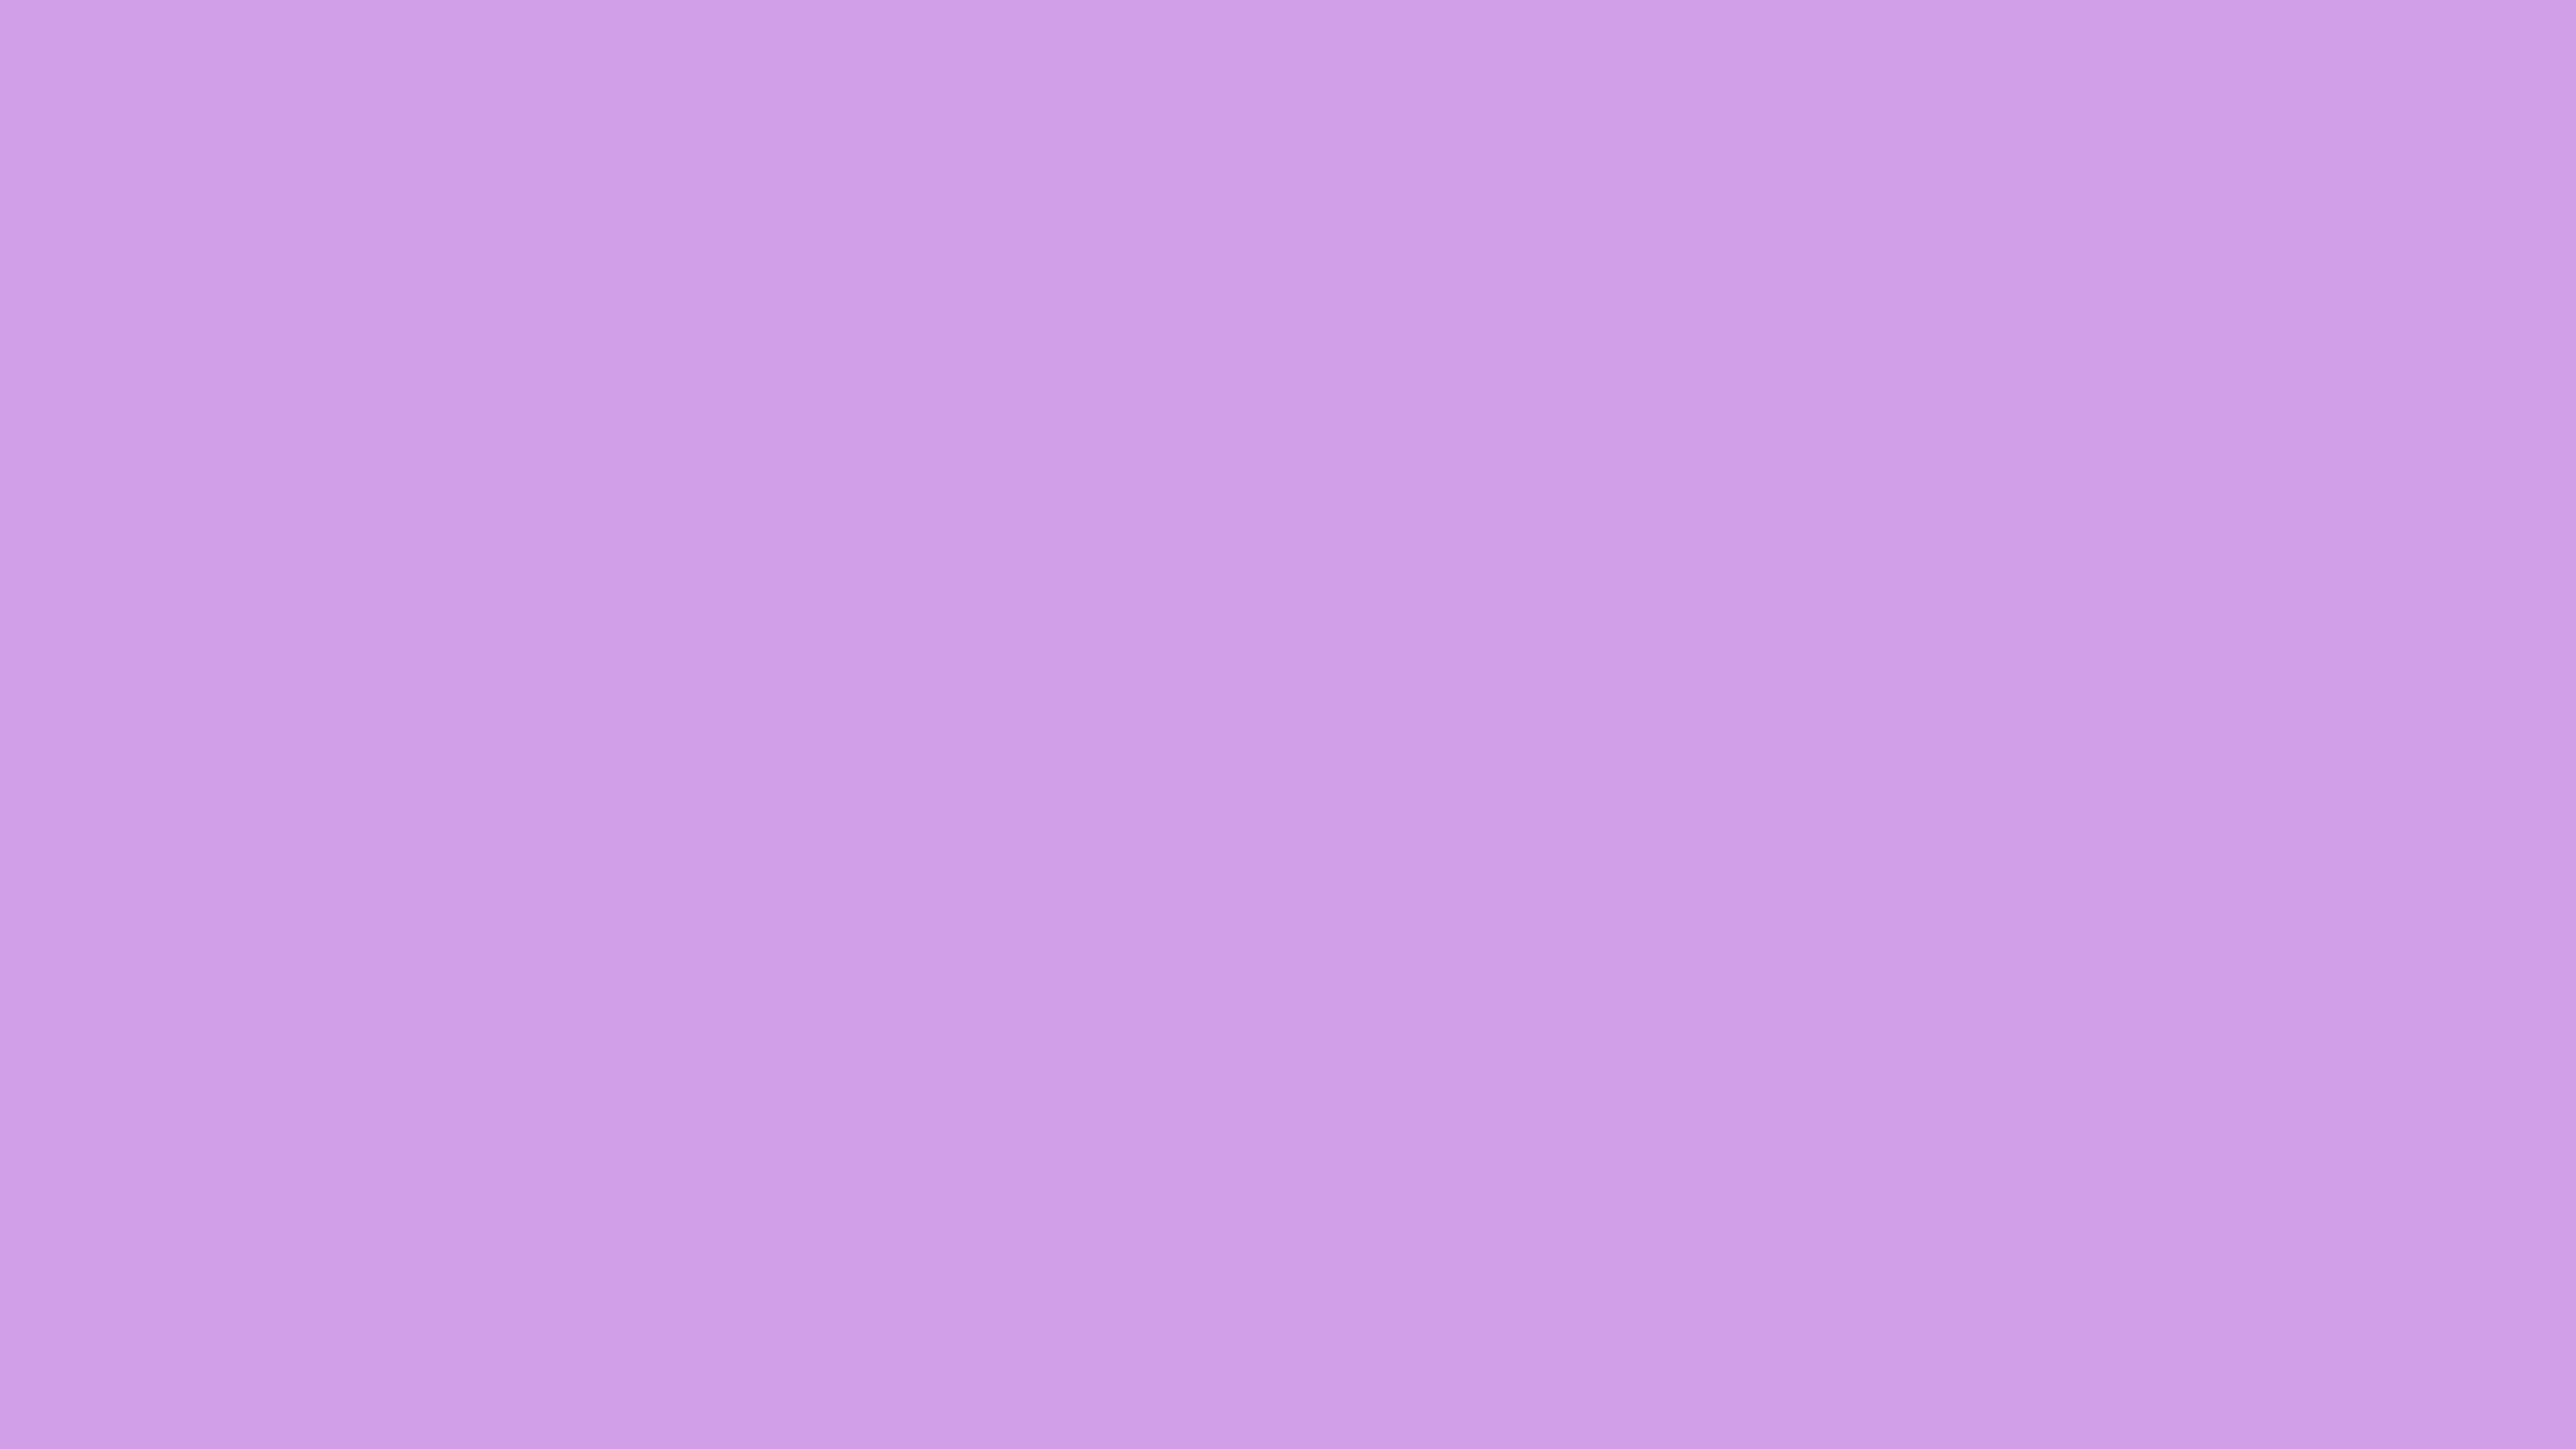 4096x2304 Bright Ube Solid Color Background